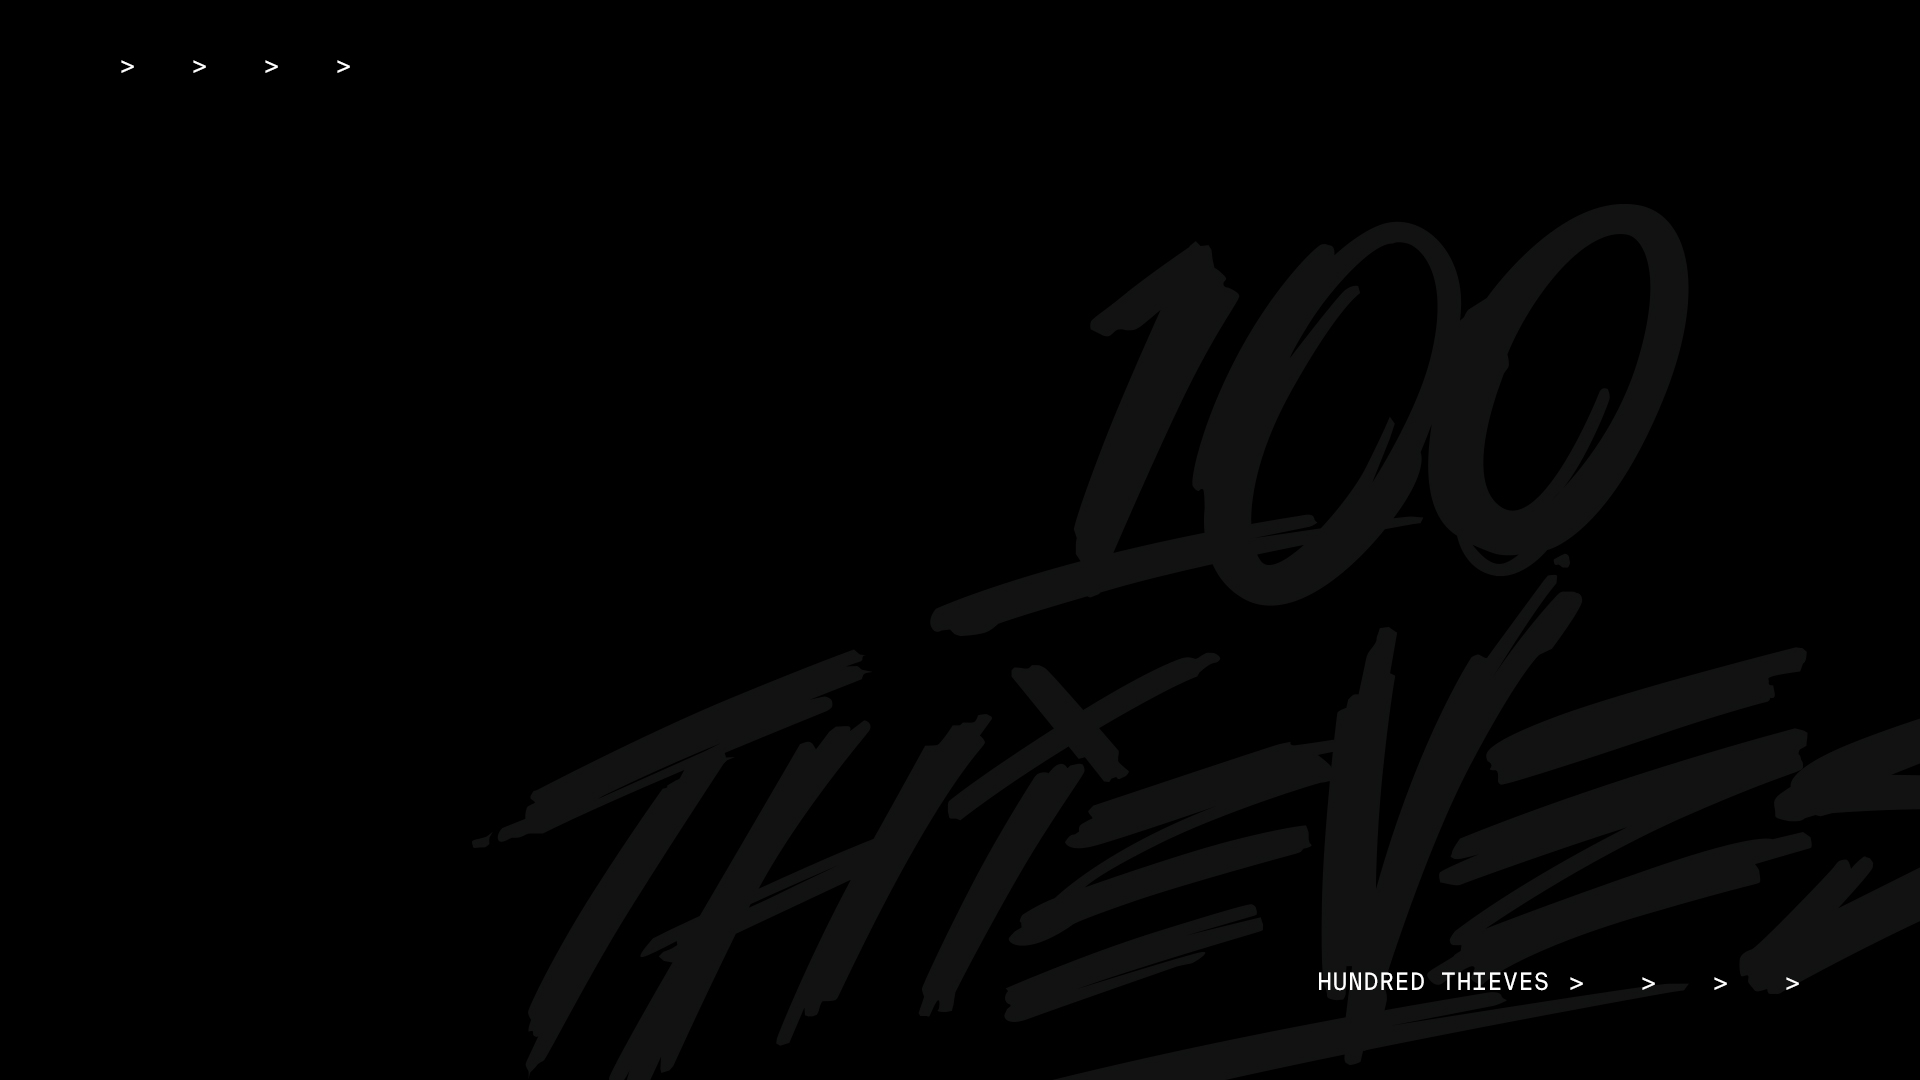 100 Thieves logo muted over black background